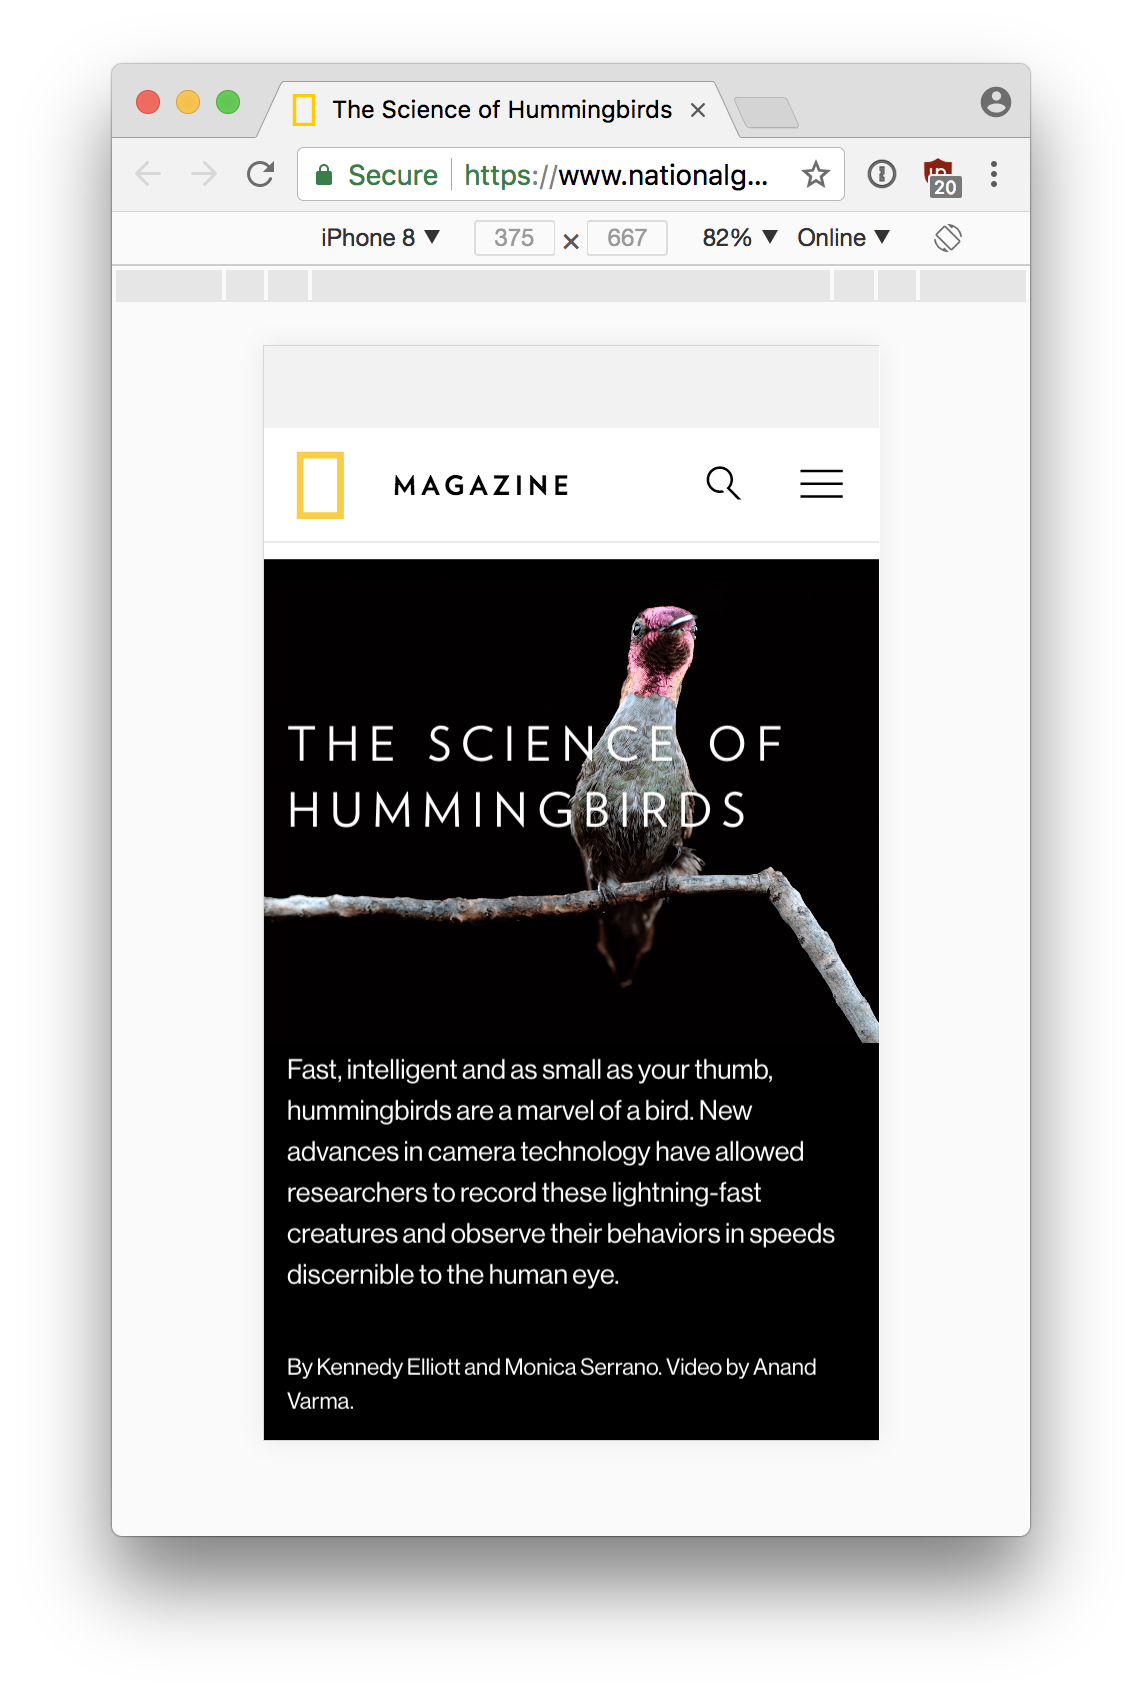 Science of Hummingbirds